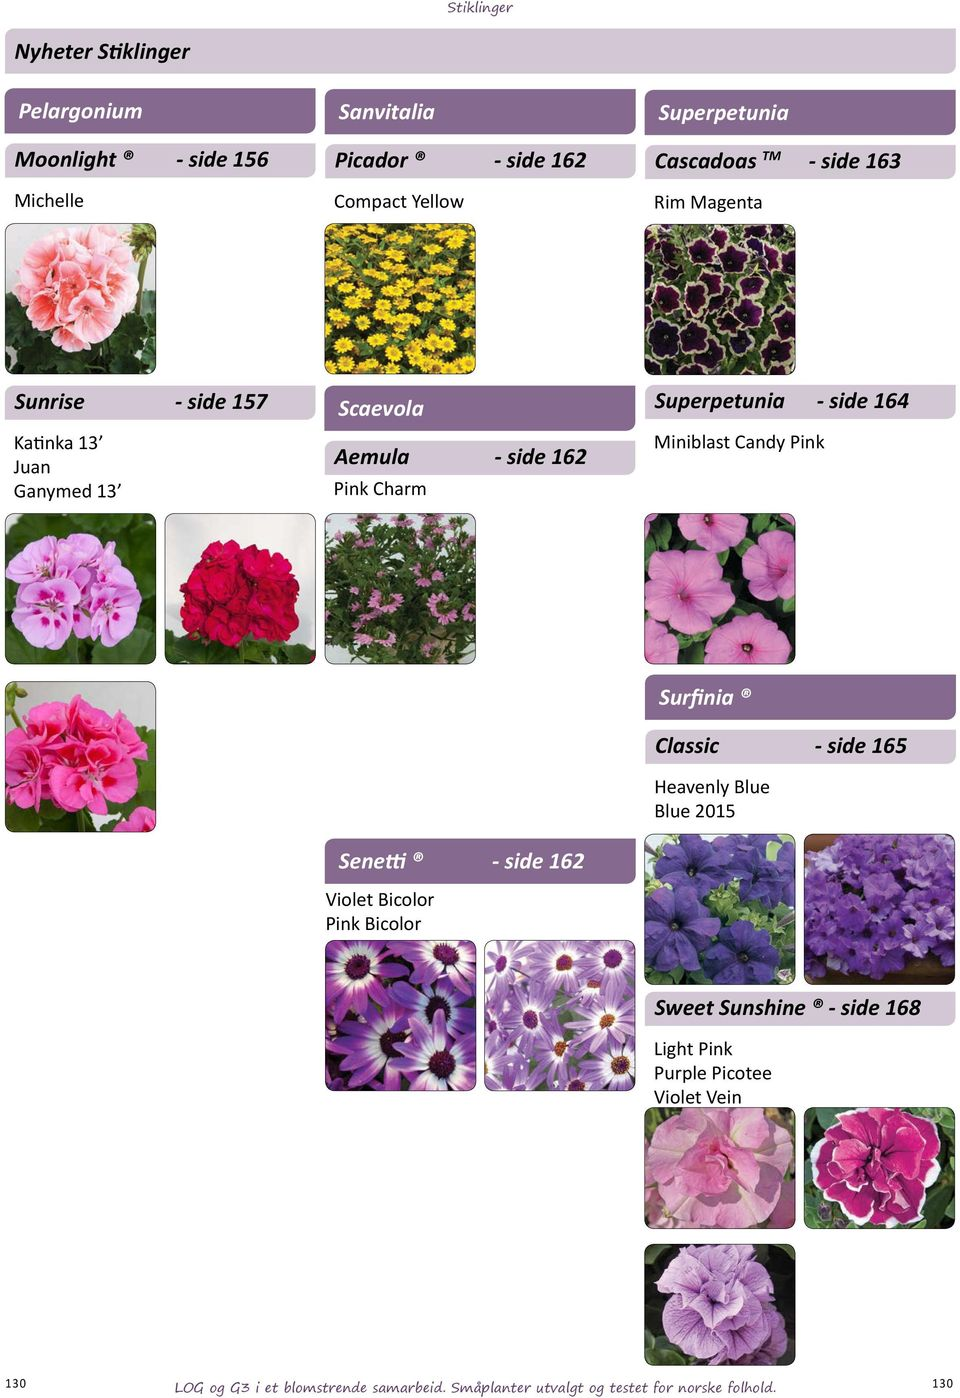 side 164 Miniblast Candy Pink Senetti - side 162 Violet Bicolor Pink Bicolor Surfinia Classic - side 165 Heavenly Blue Blue 2015 Sweet